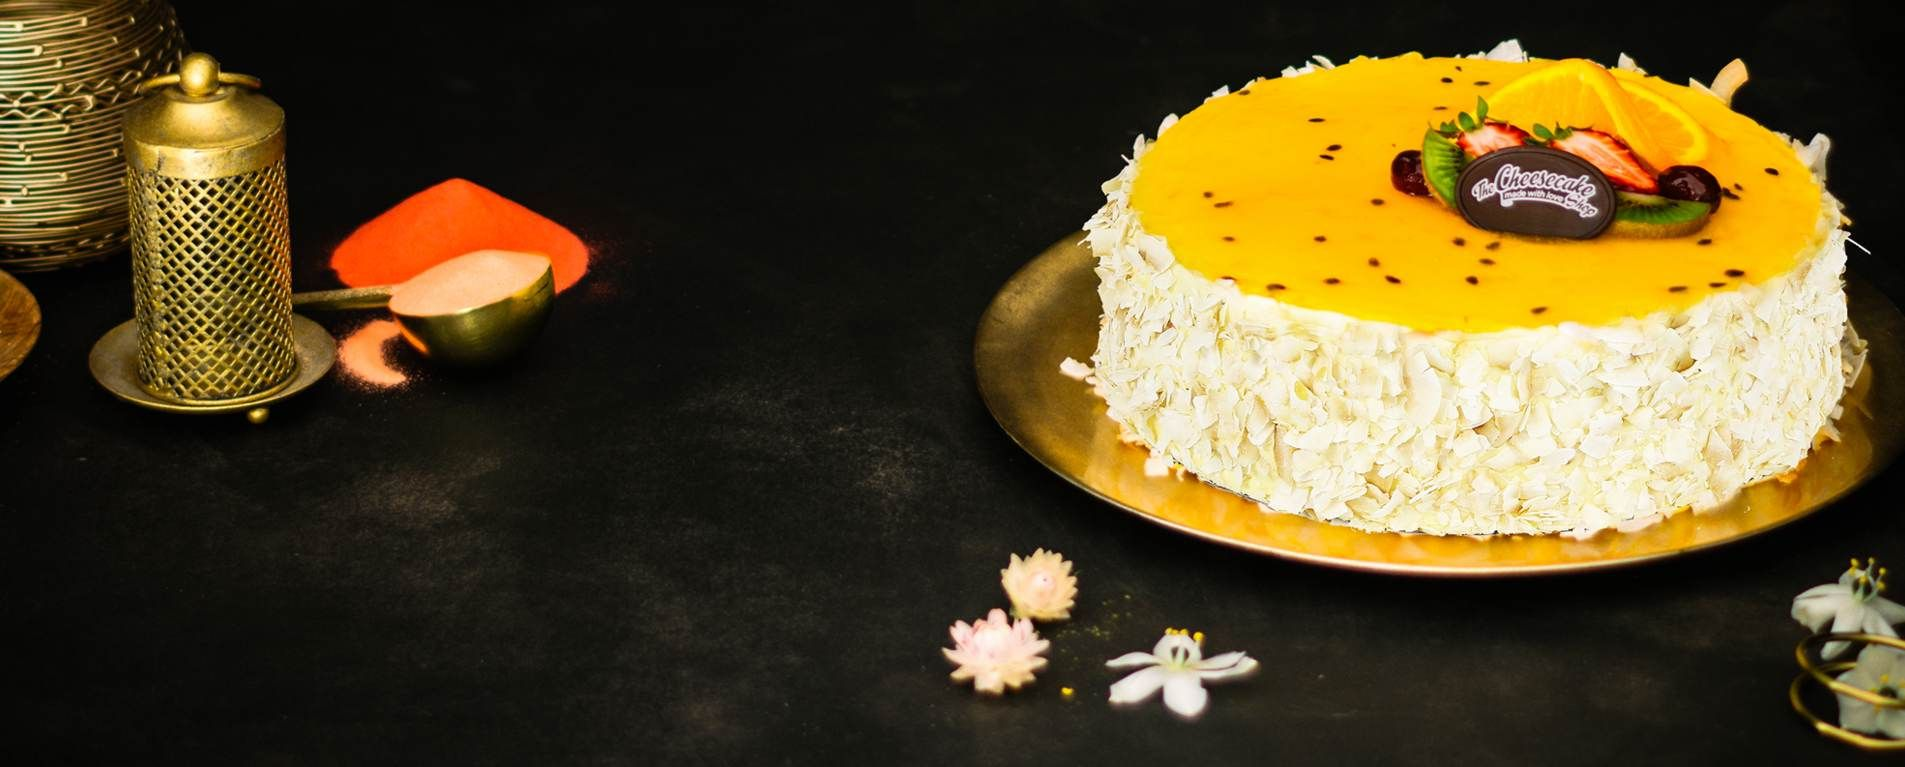 EGGLESS TROPICAL TORTE